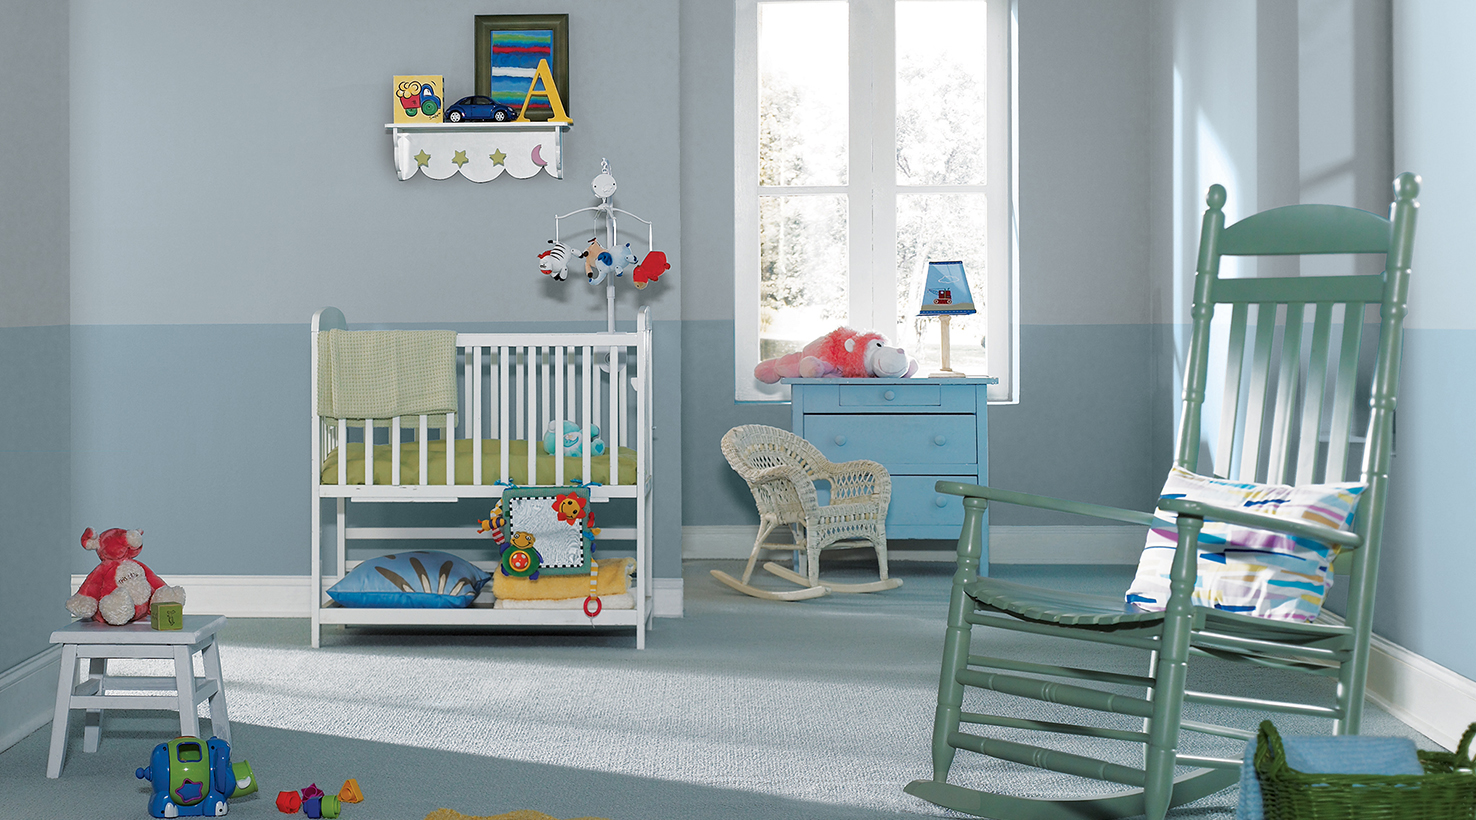 Wall Colour Inspiration: Baby & Toddler Room Paint Color Ideas